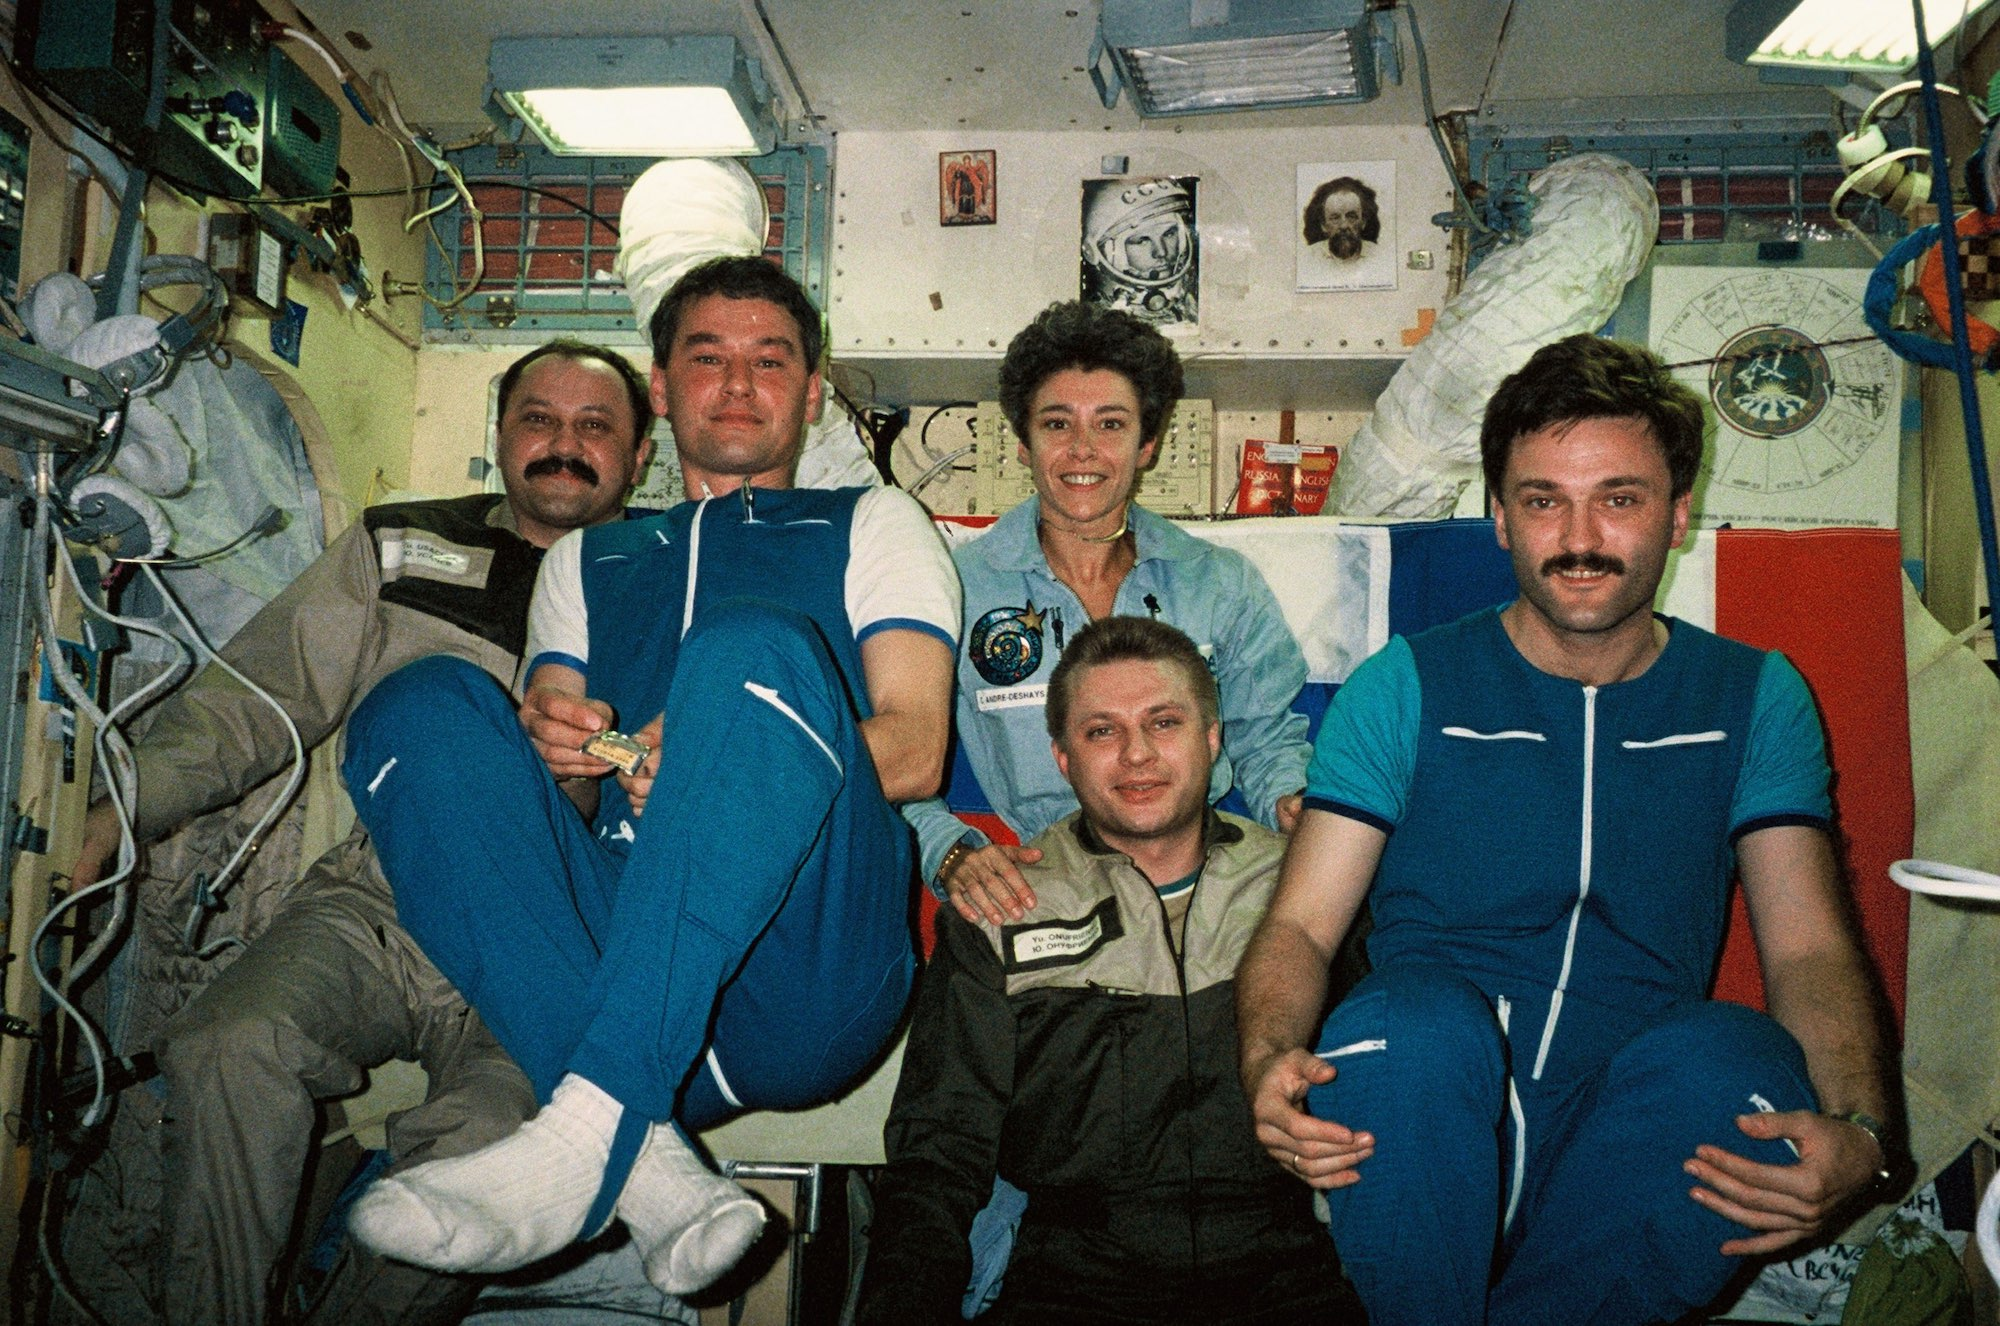 Claudie Haigneré aboard Mir during her Cassiopeia mission in 1996.  Here in the centre, she is with (left to right) Yuri Usatchev, Valeri Korzun, Yuri Onufrienko and Alexander Kaleri. Credit CNES/Claudie André-Deshays